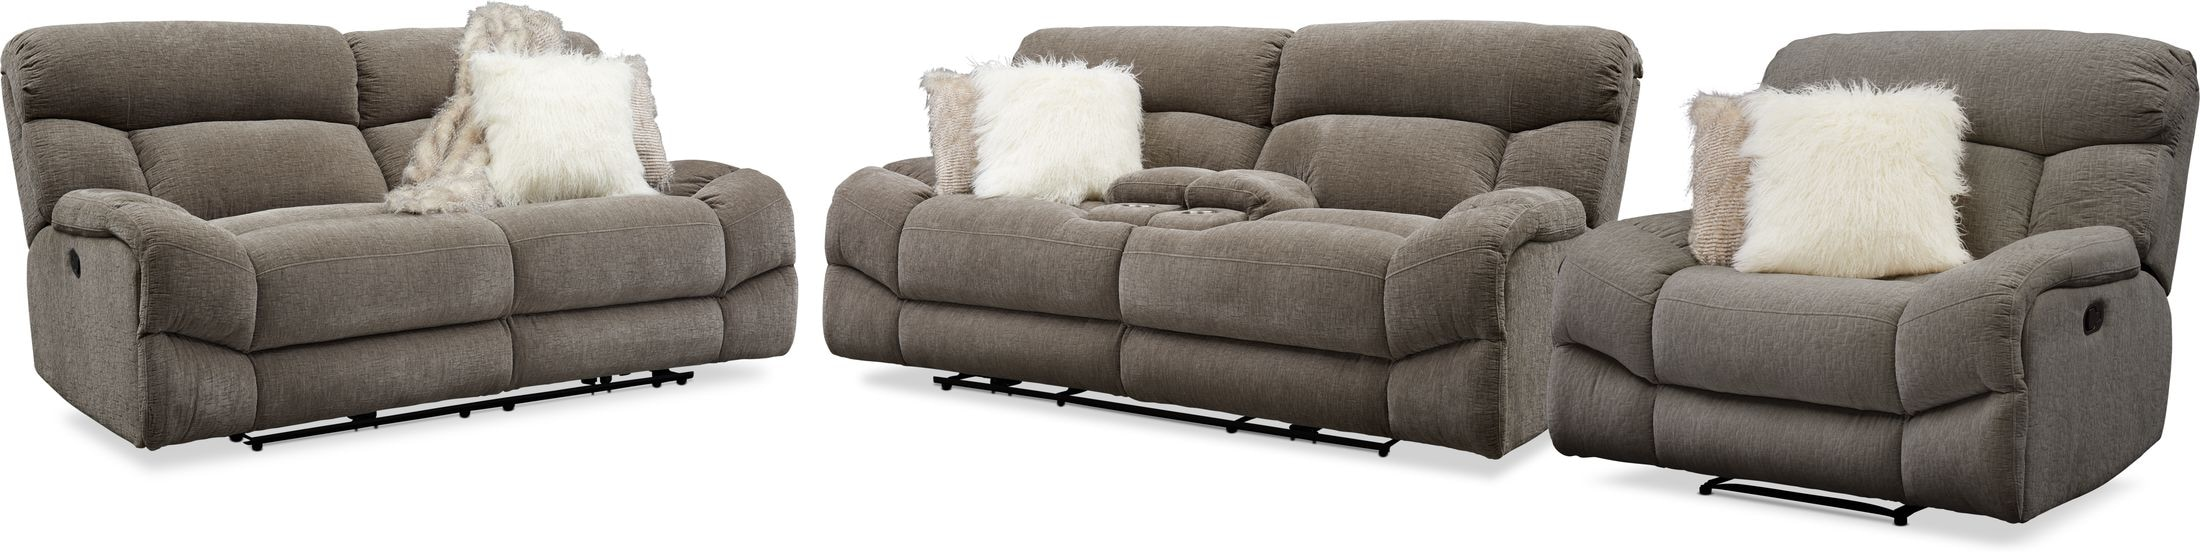 Living Room Furniture - Wave Manual Reclining Sofa, Loveseat and Recliner